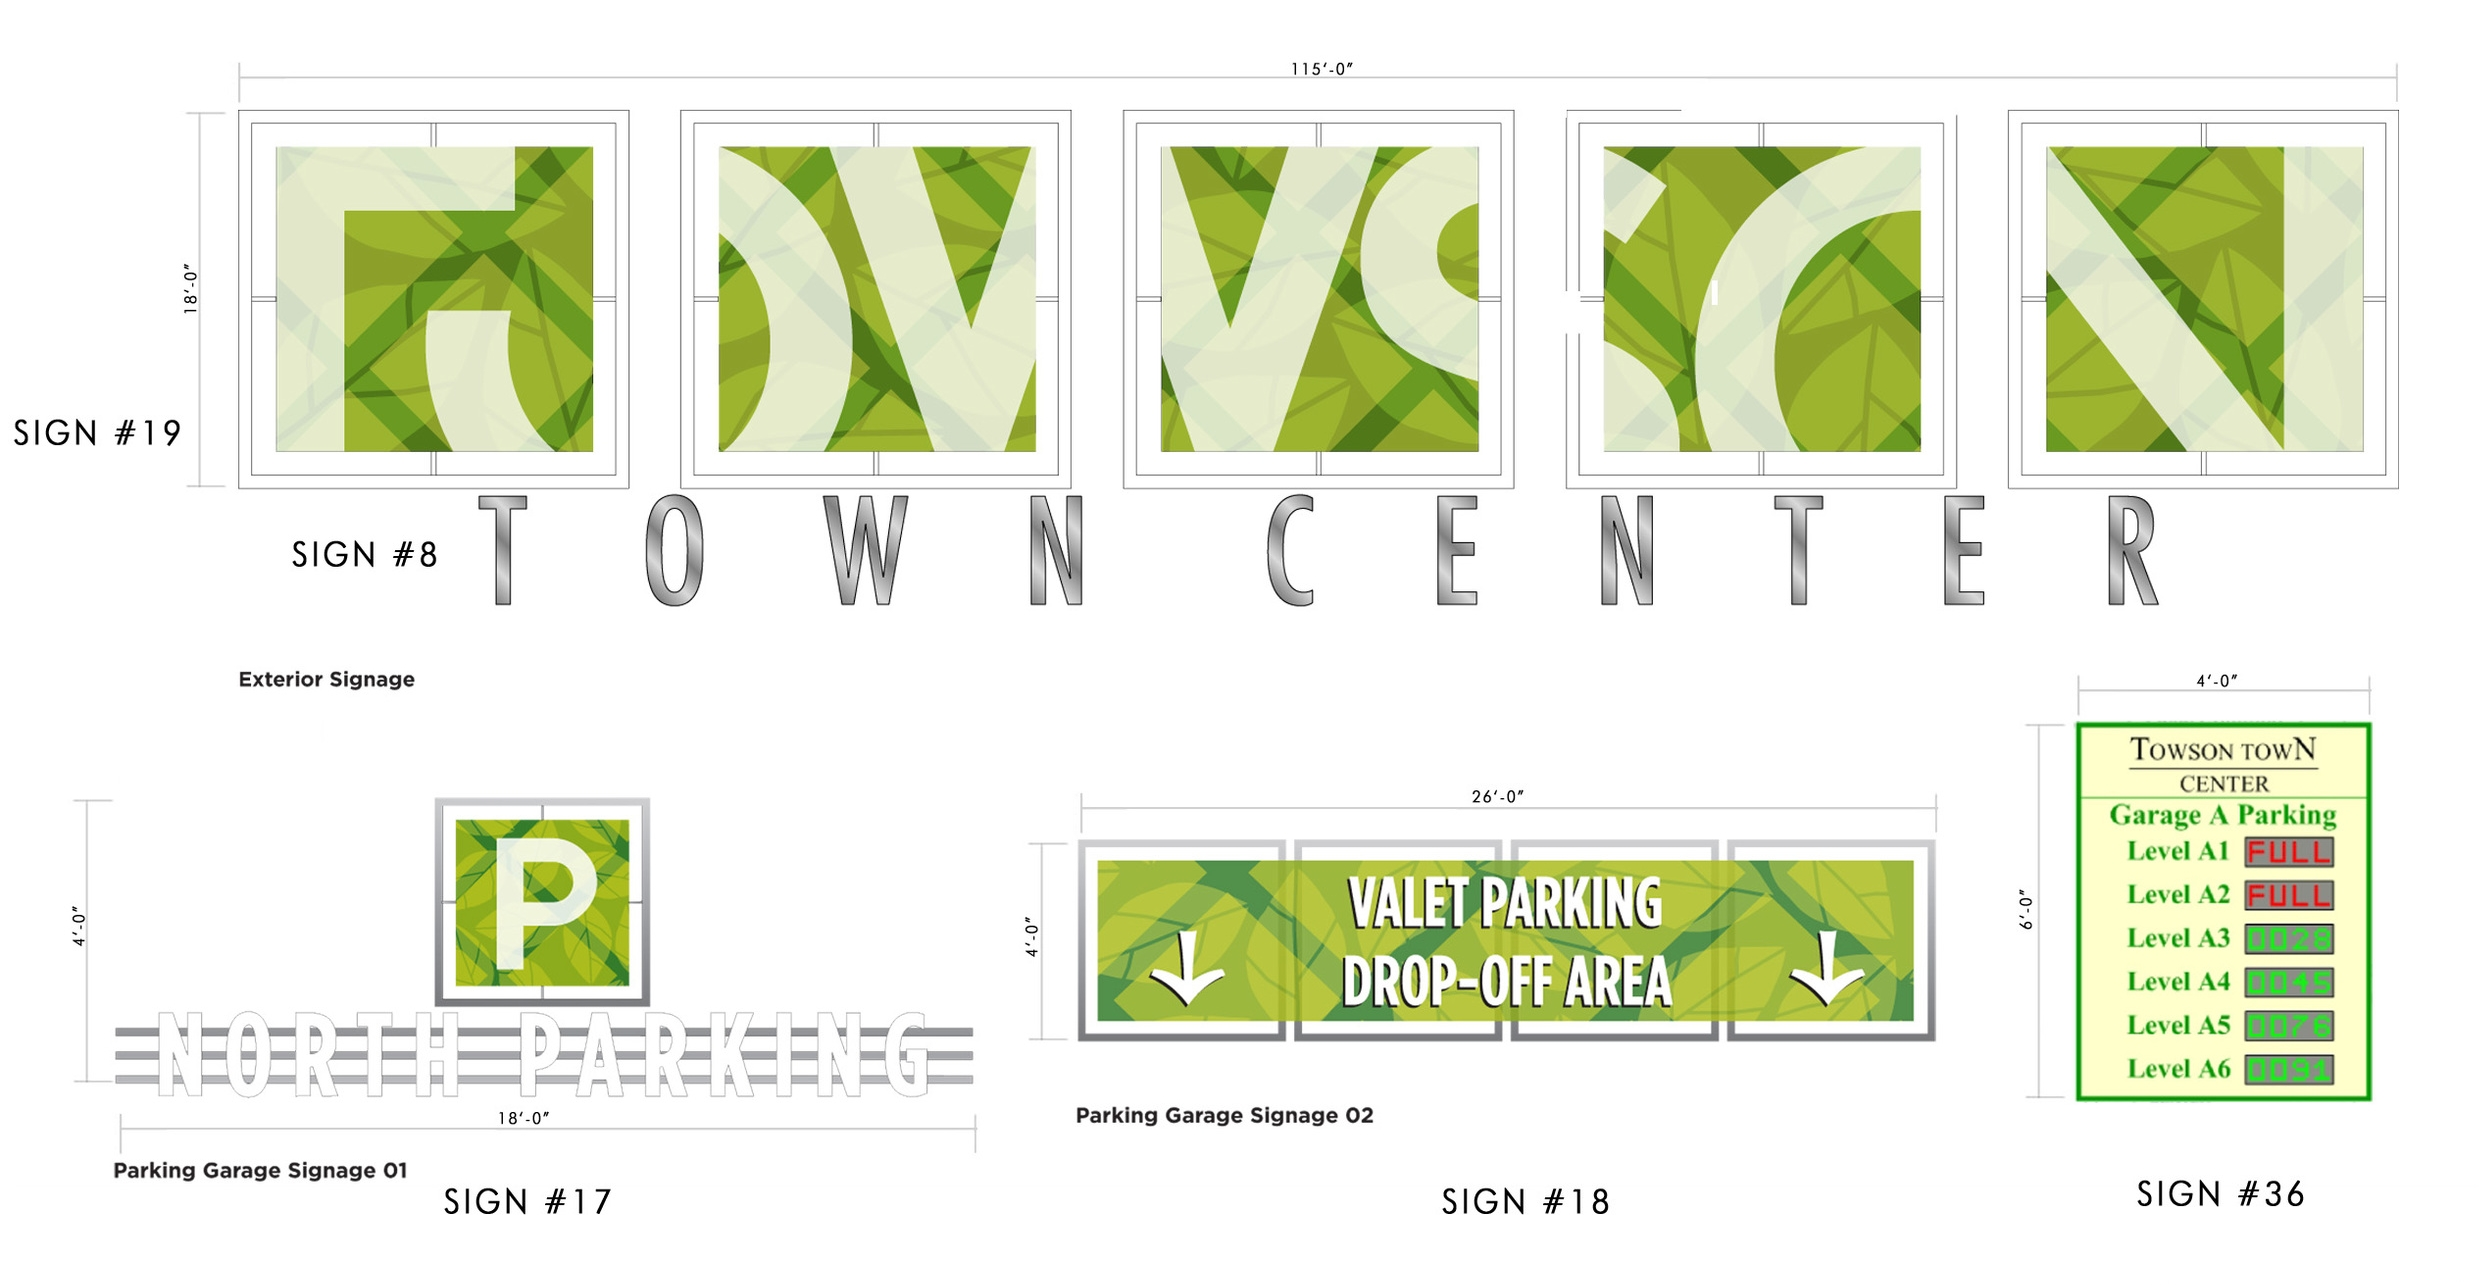 03 11x17  Building Mounted Signs.jpg